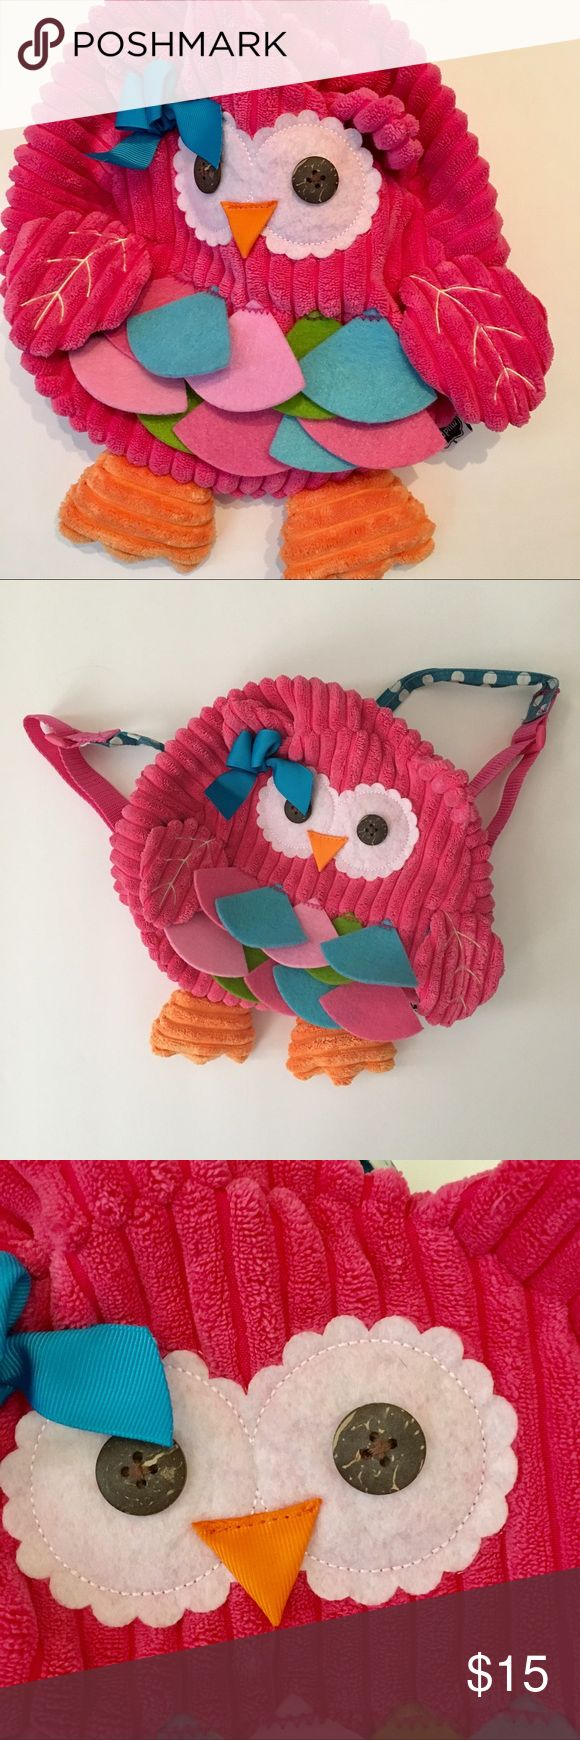 Mud Pie Toddler Girls Fabric Owl Backpack Mud Pie Toddler Girls Backpack. This little Backpack is utterly adorable!!! This buttery soft Backpack is made of jumbo wale corduroy in bright pink. The eyes are wood buttons. The beak and feathers are of brightly colored felt! Underside of wings, and straps are in turquoise and white polka dot cotton fabric. Zips around the top for holding a few essentials. Machine washable. It's clean inside and out and in good pre-owned condition. Smoke free…